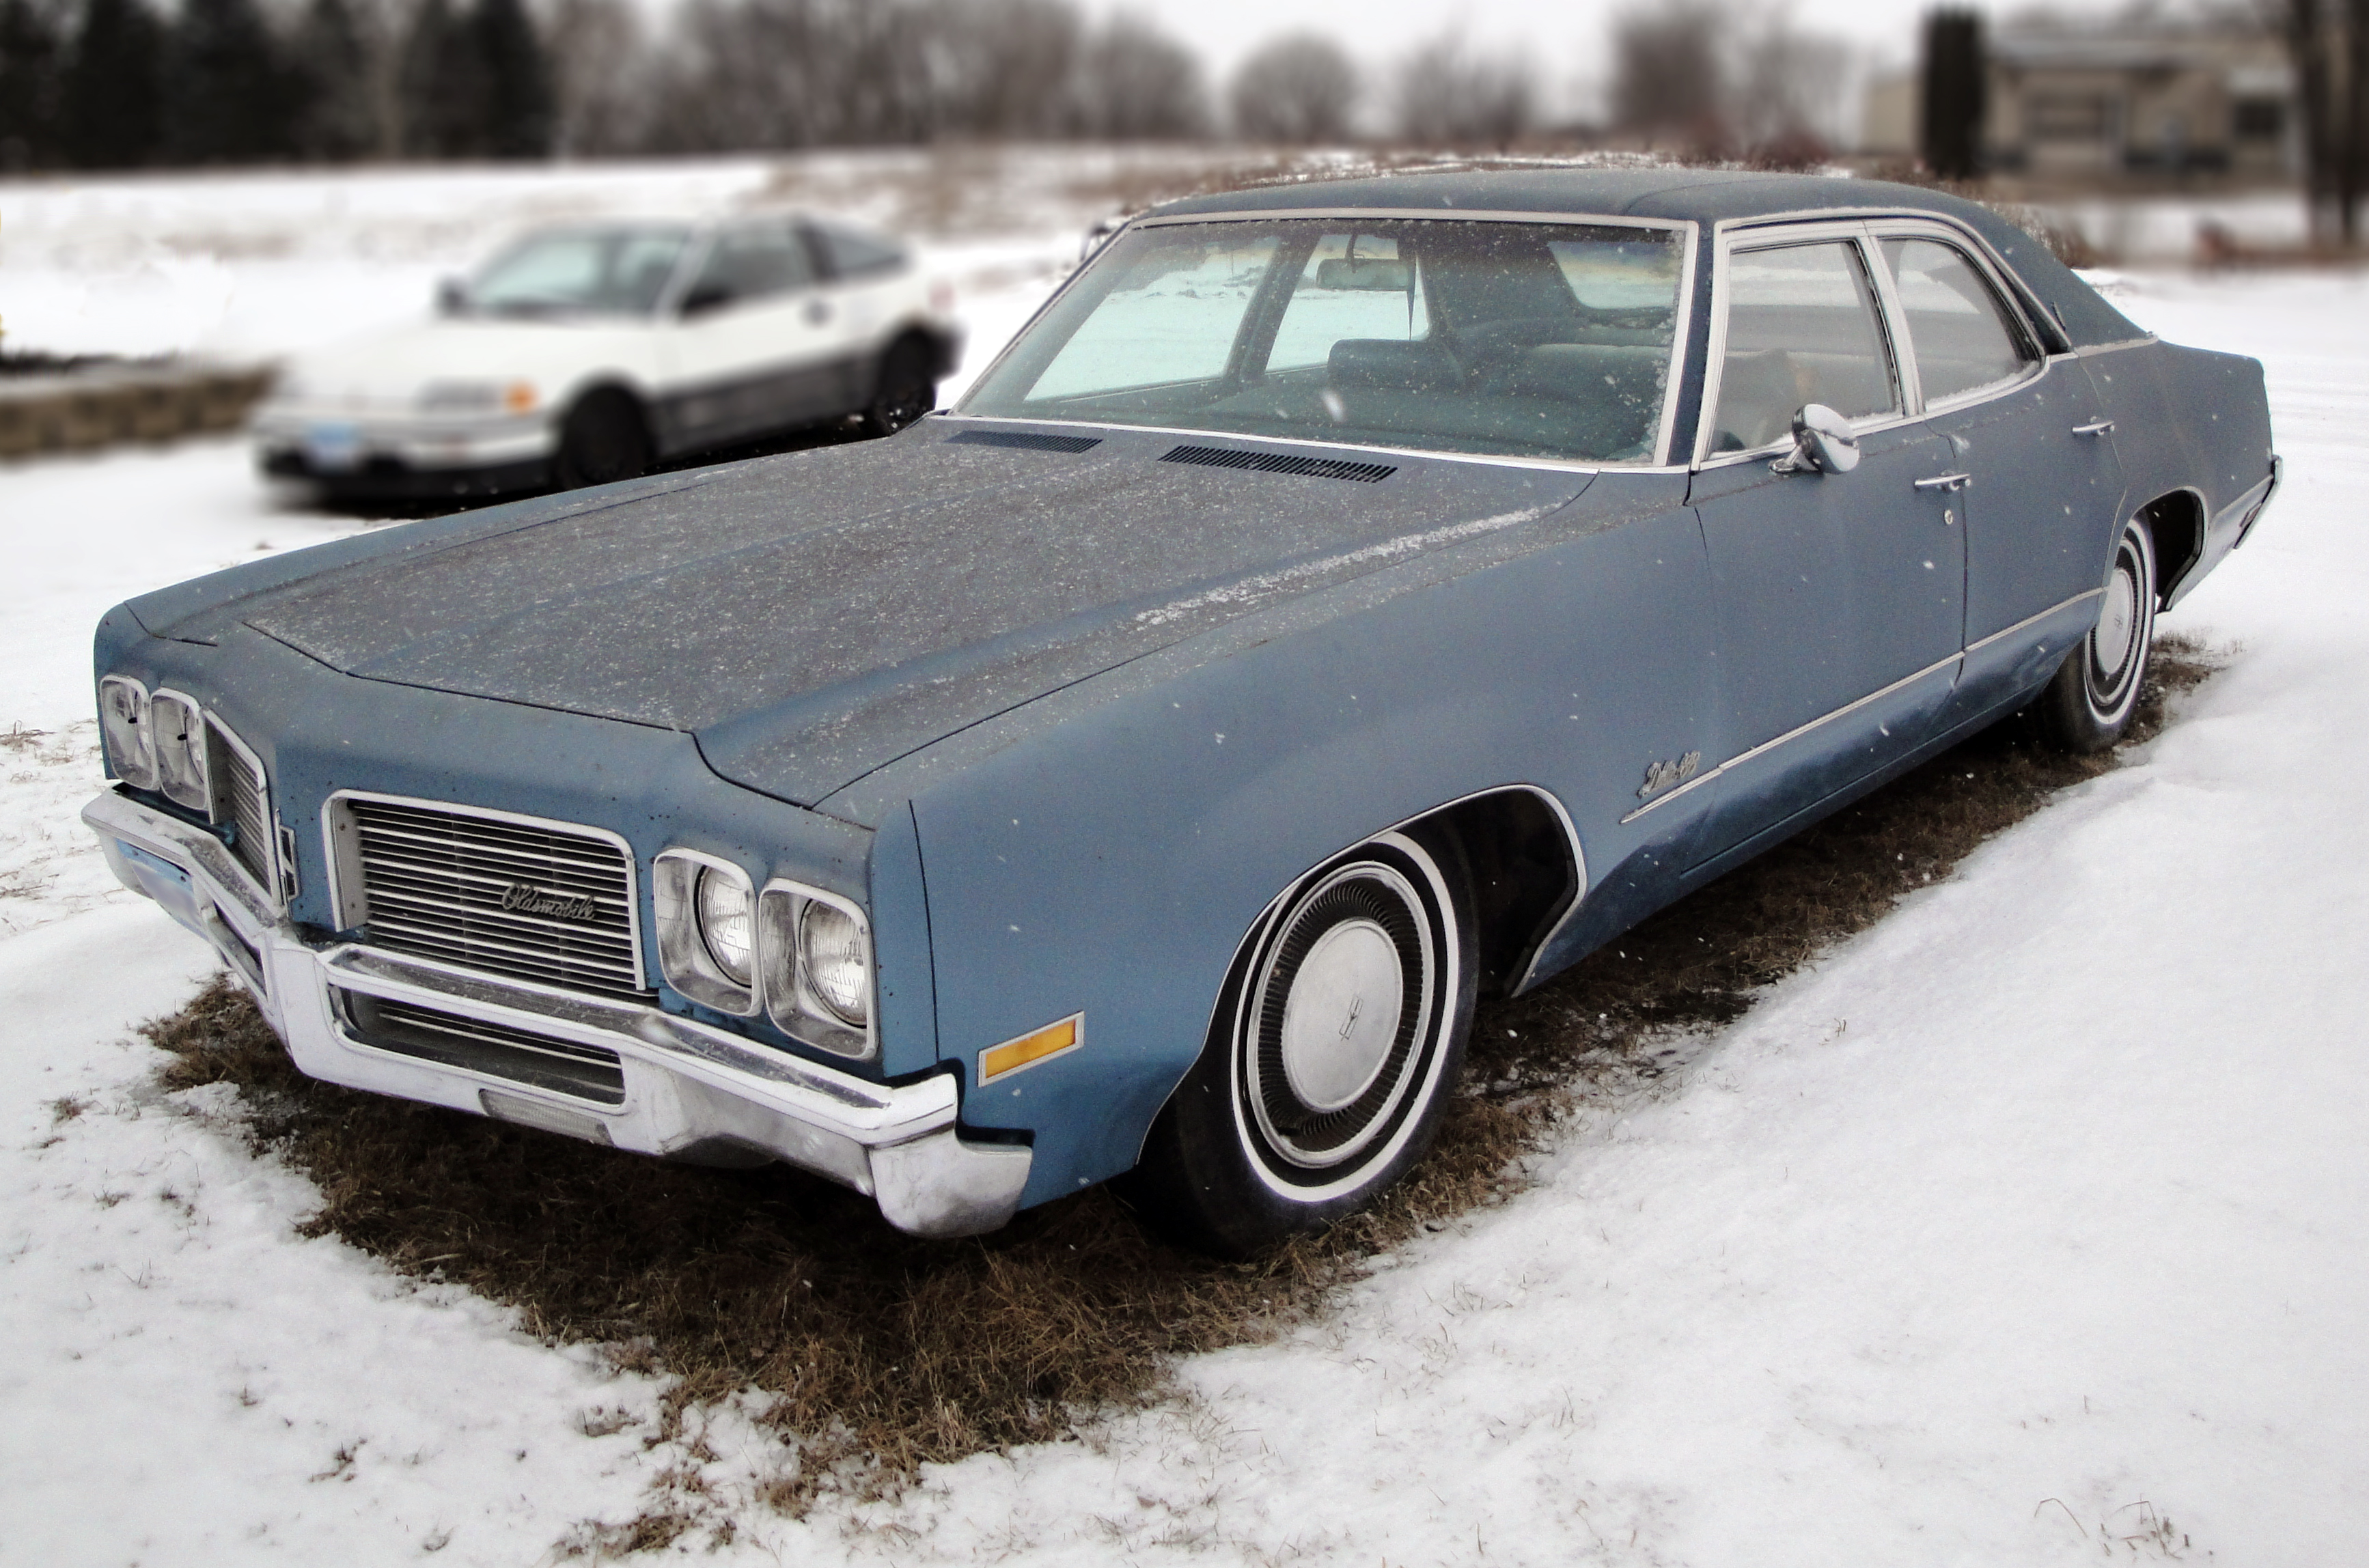 1970 Oldsmobile Delta 88 Photos, Informations, Articles - BestCarMag.com